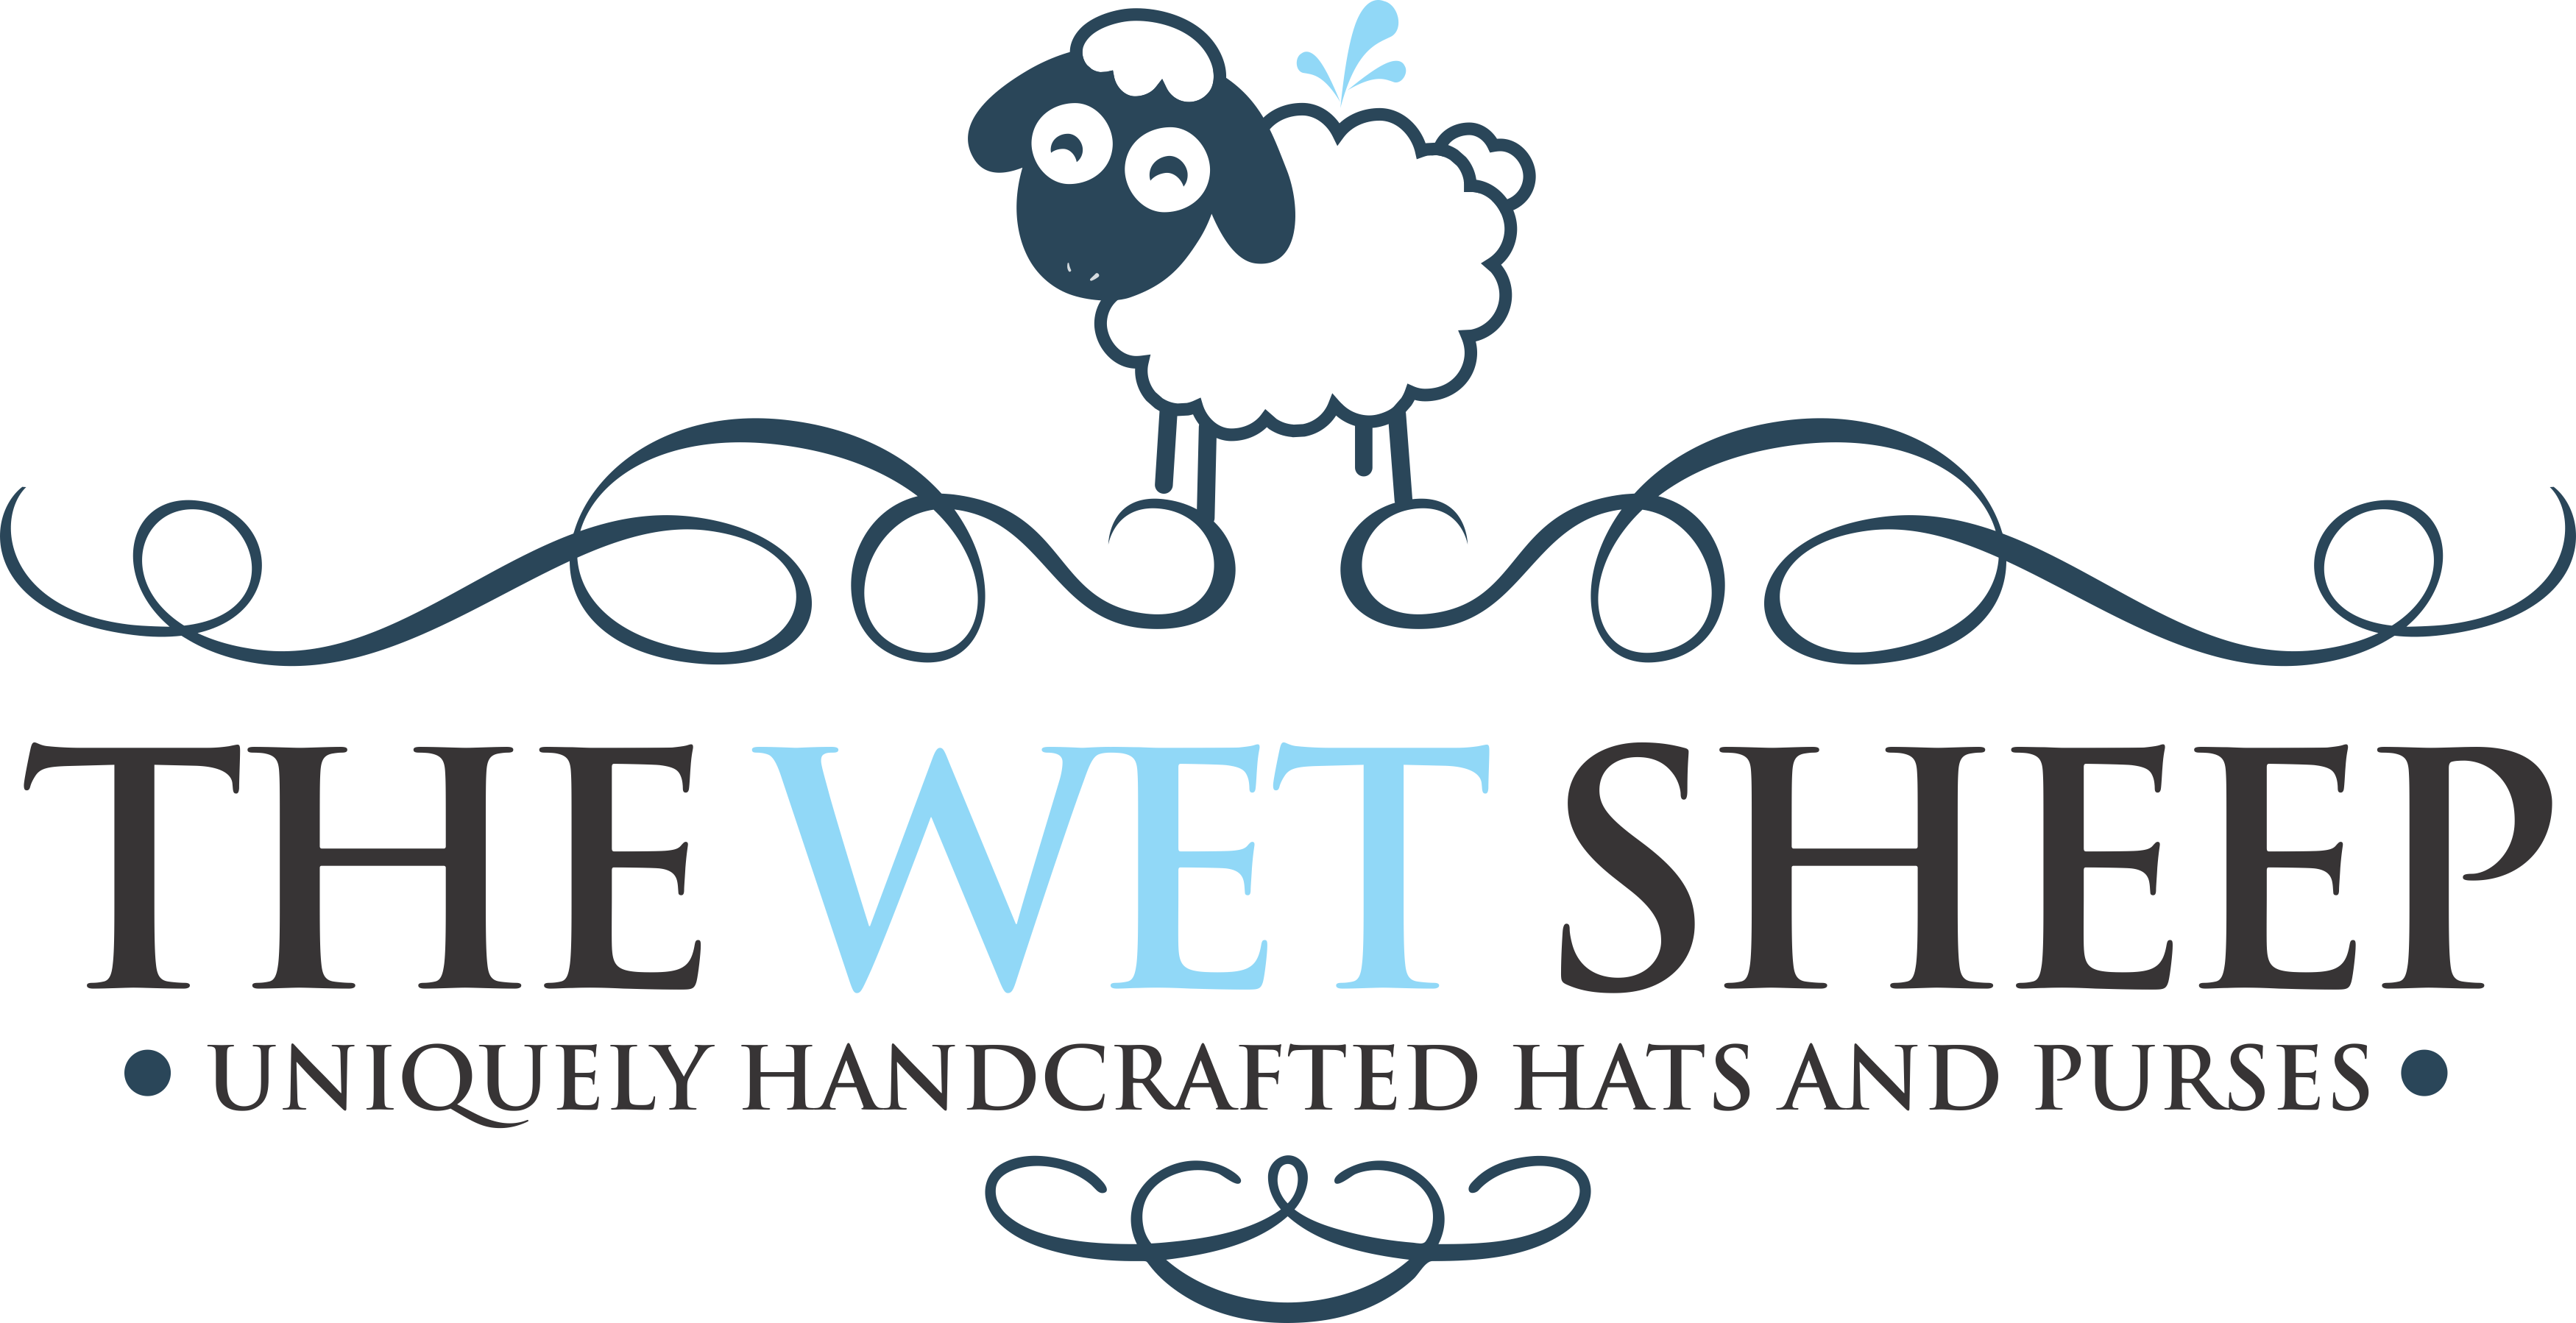 The Wet Sheep